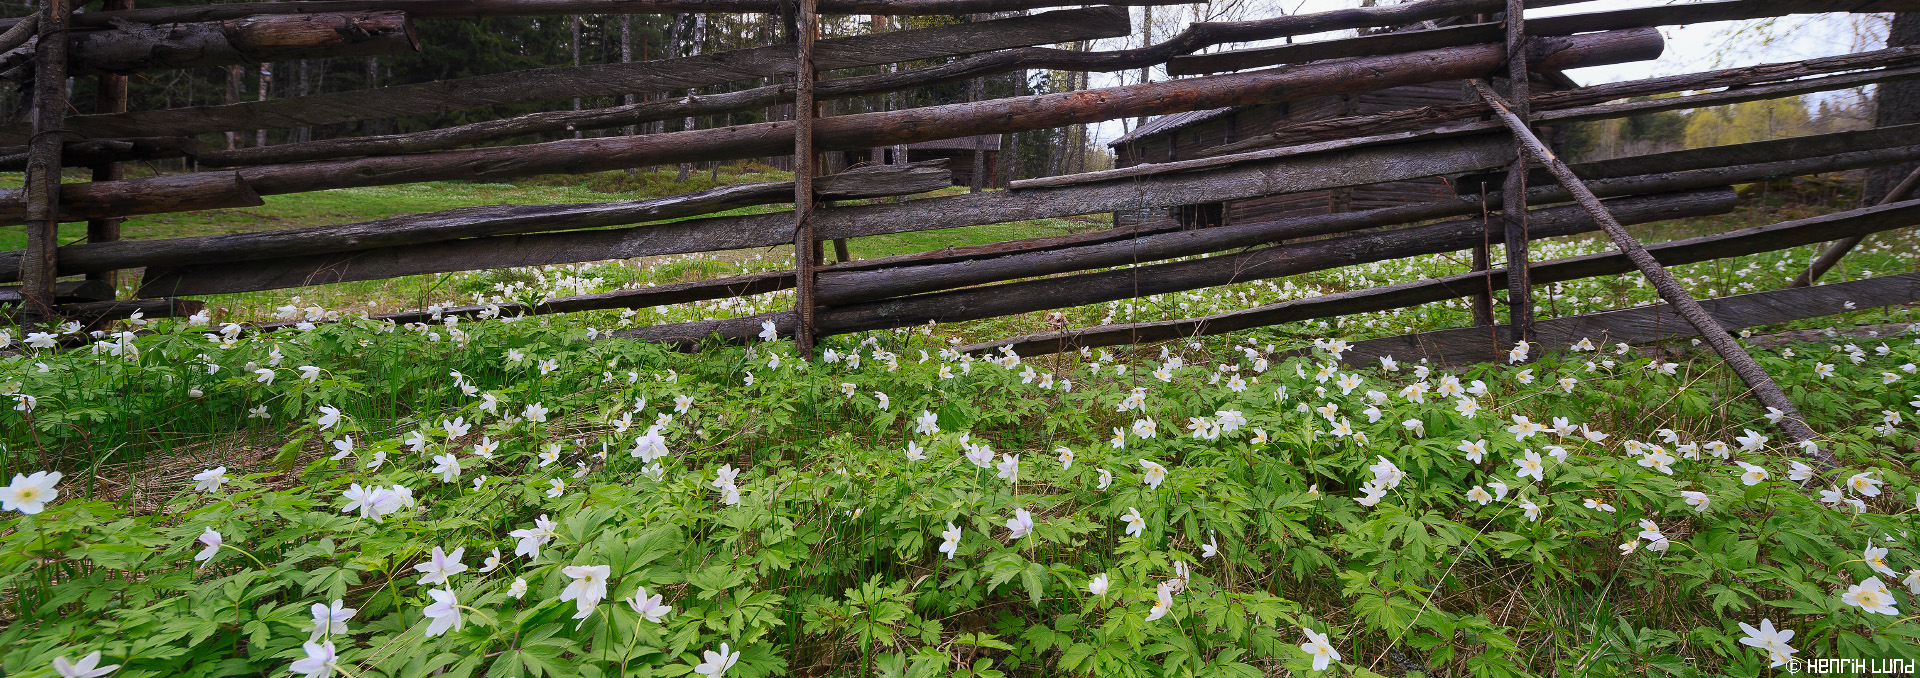 Wood anemones in front of a traditional woodpole fence. Immersby, Sibbo, Finland, May 2015.